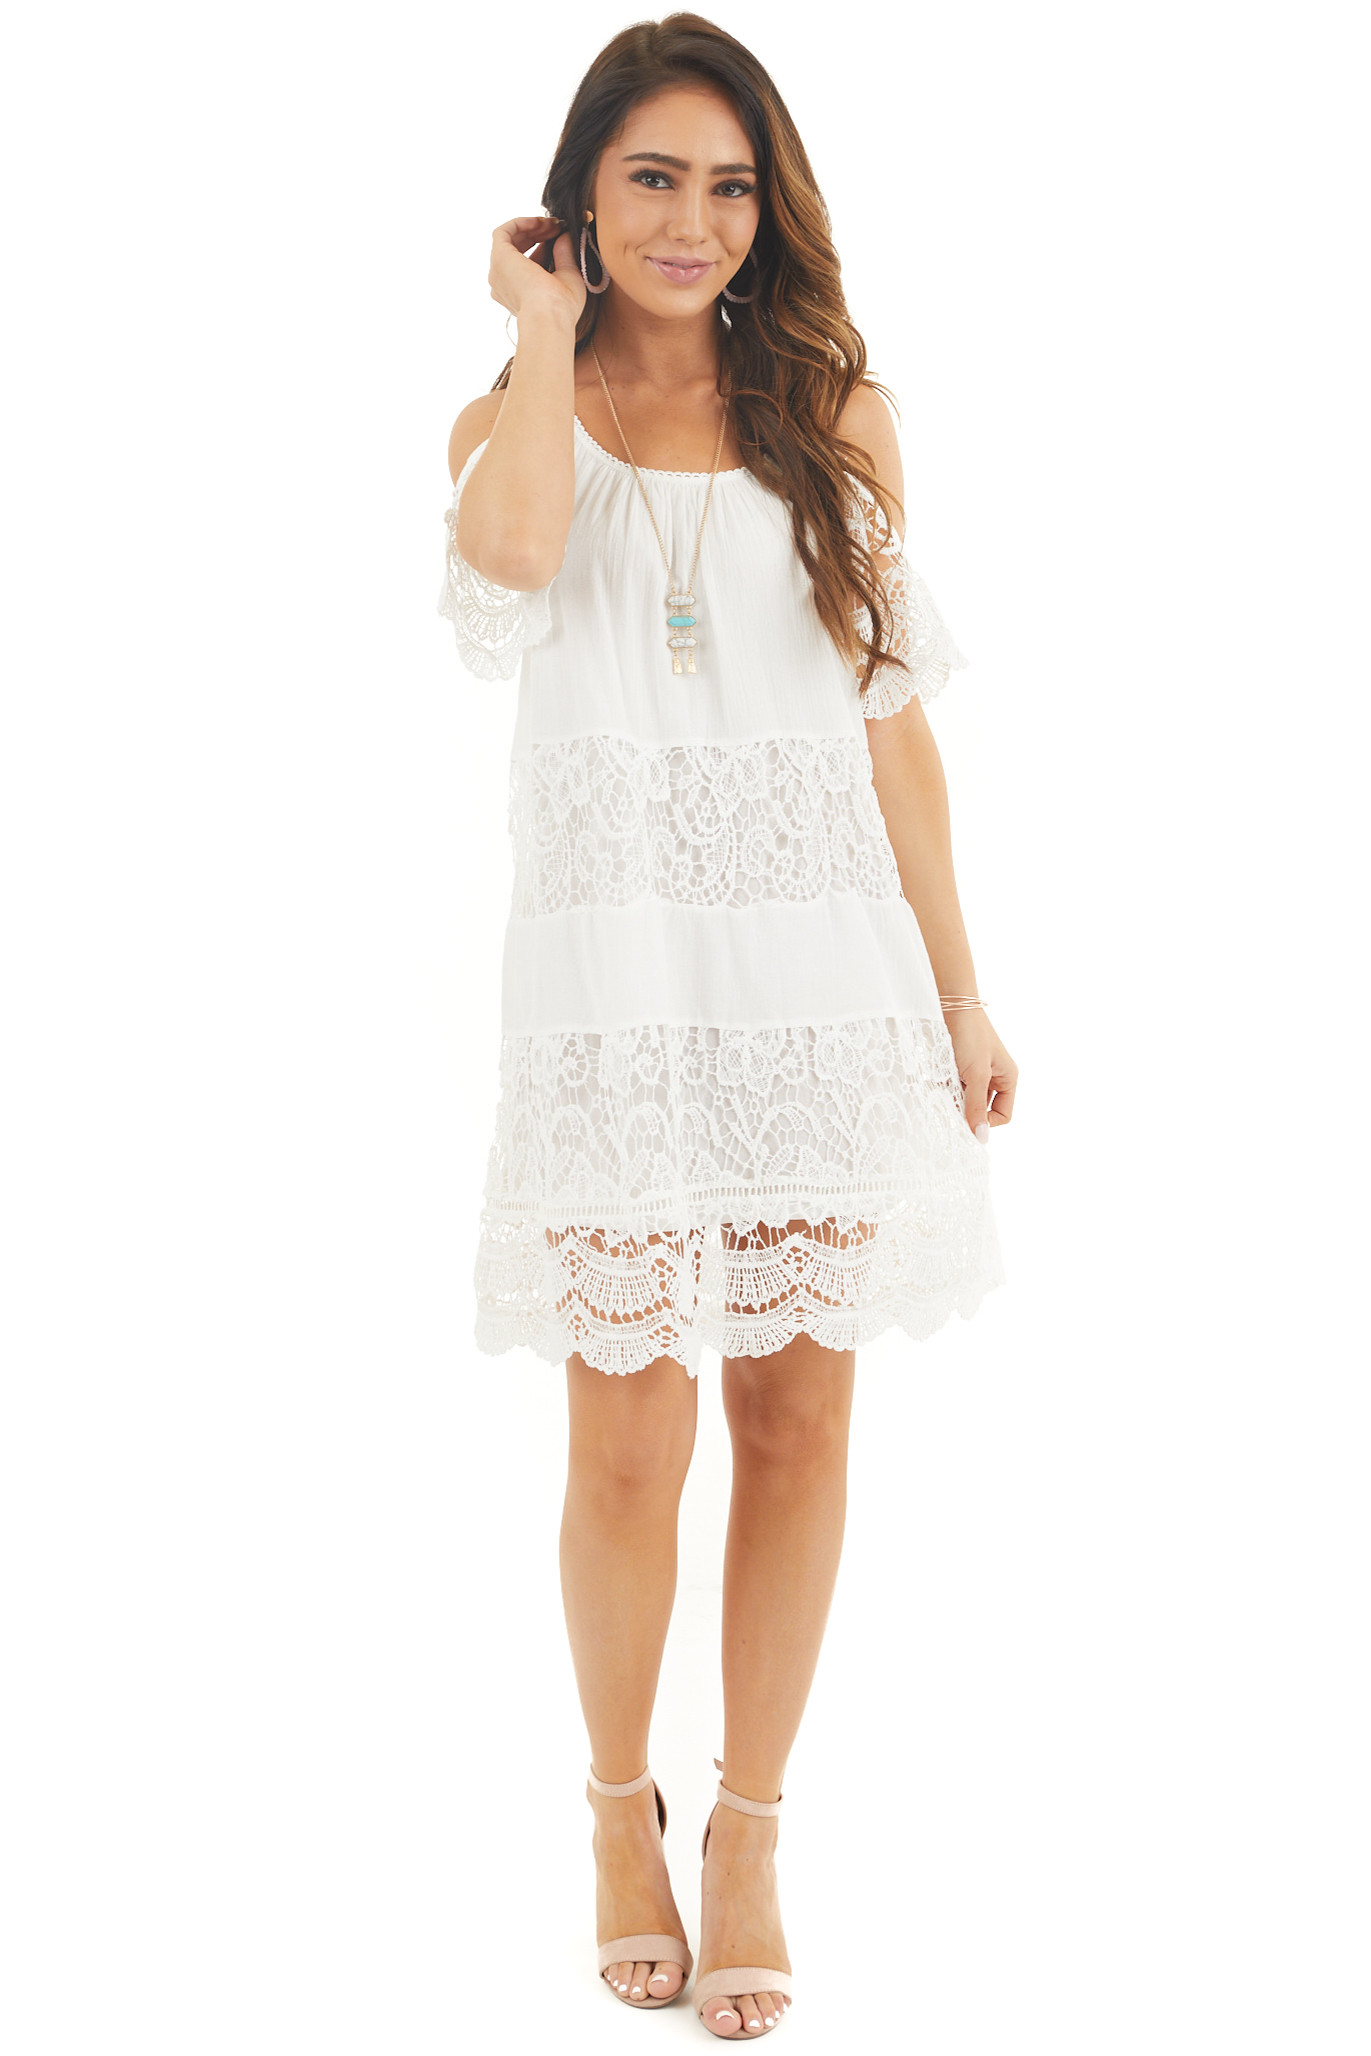 White Off the Shoulder Dress with Lace and Scalloped Hem